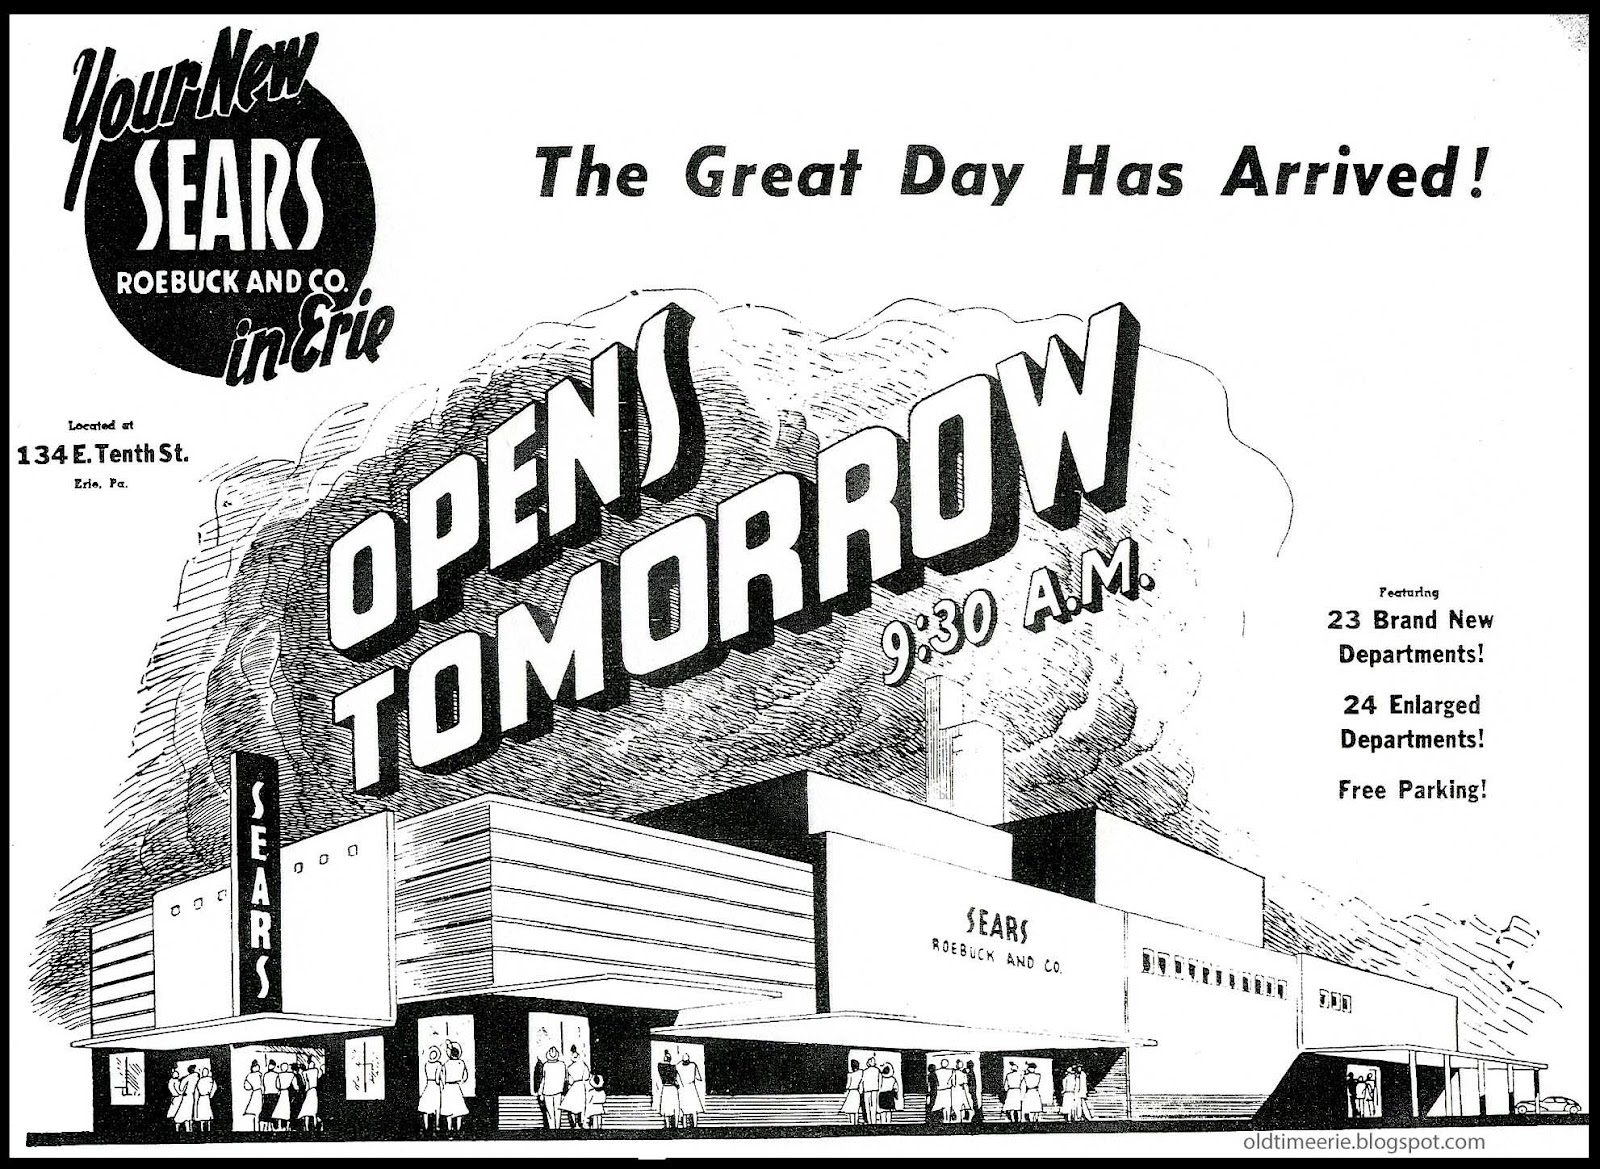 old time erie august 2012 Queen Band 1970 sears grand opening 134 e 10th st in 1948 erie pa